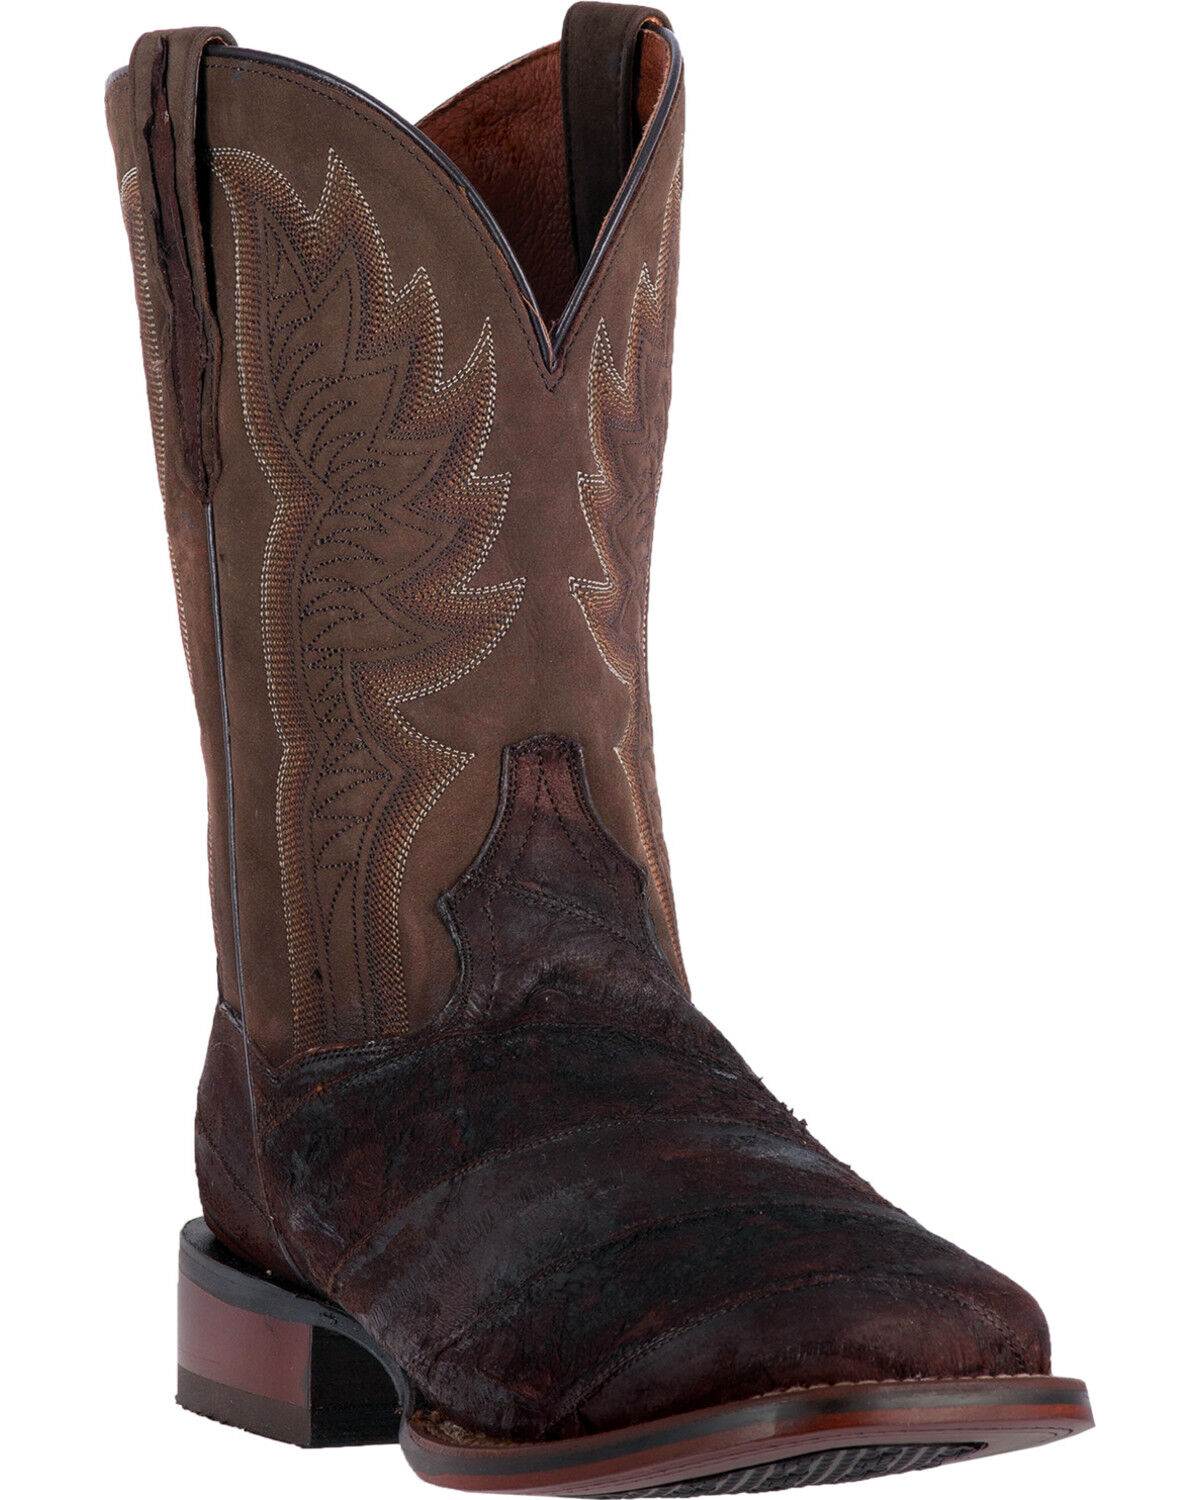 DP2565 Men/'s Brown Rustic Leather Cowboy Boots Dan Post Kellen